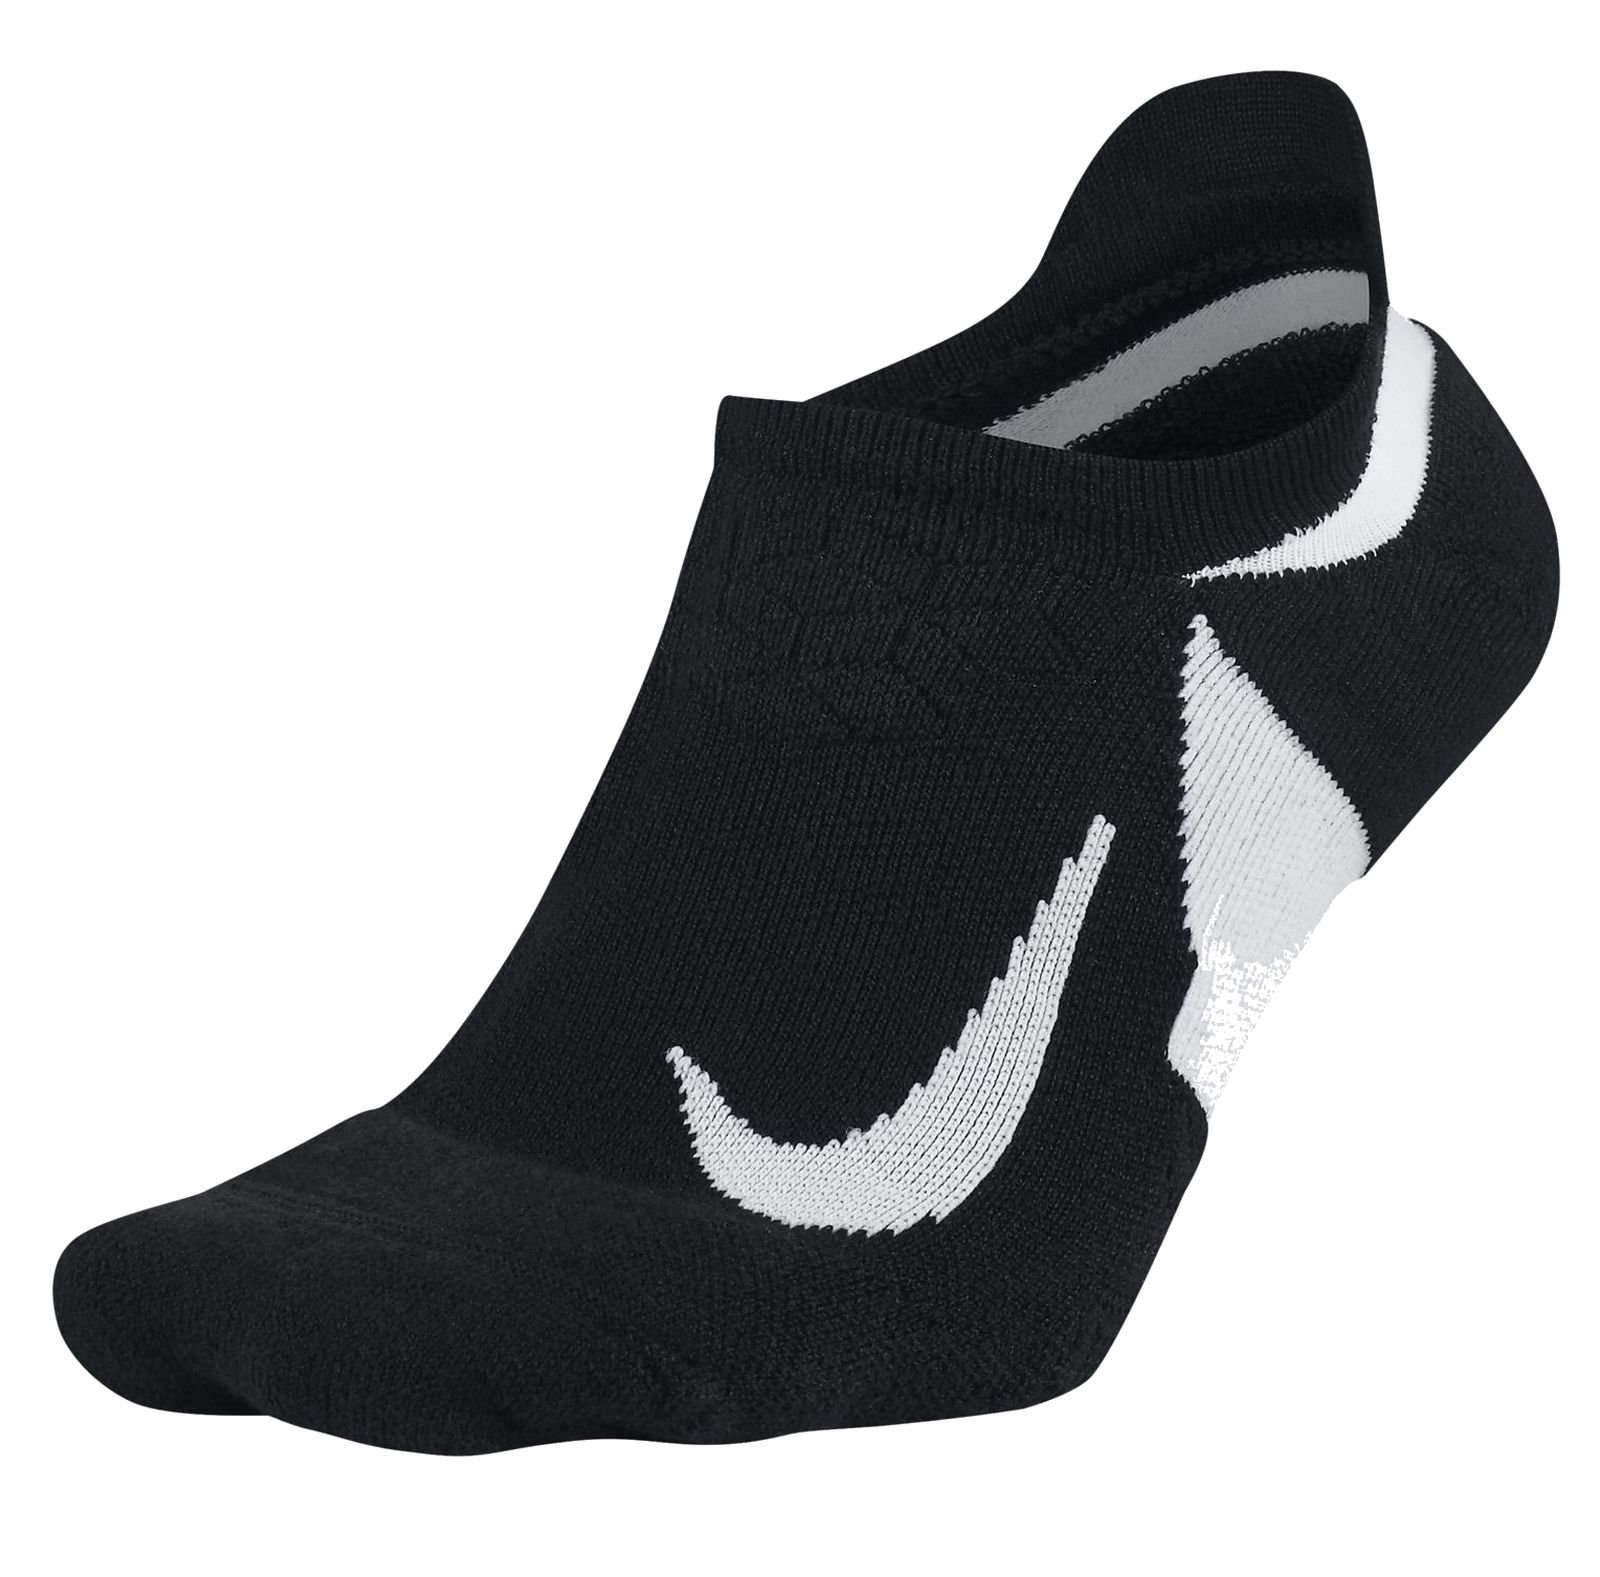 NIKE Unisex Spark Cushioned No-Show Running Socks, Black/White/White, Size 8-9.5